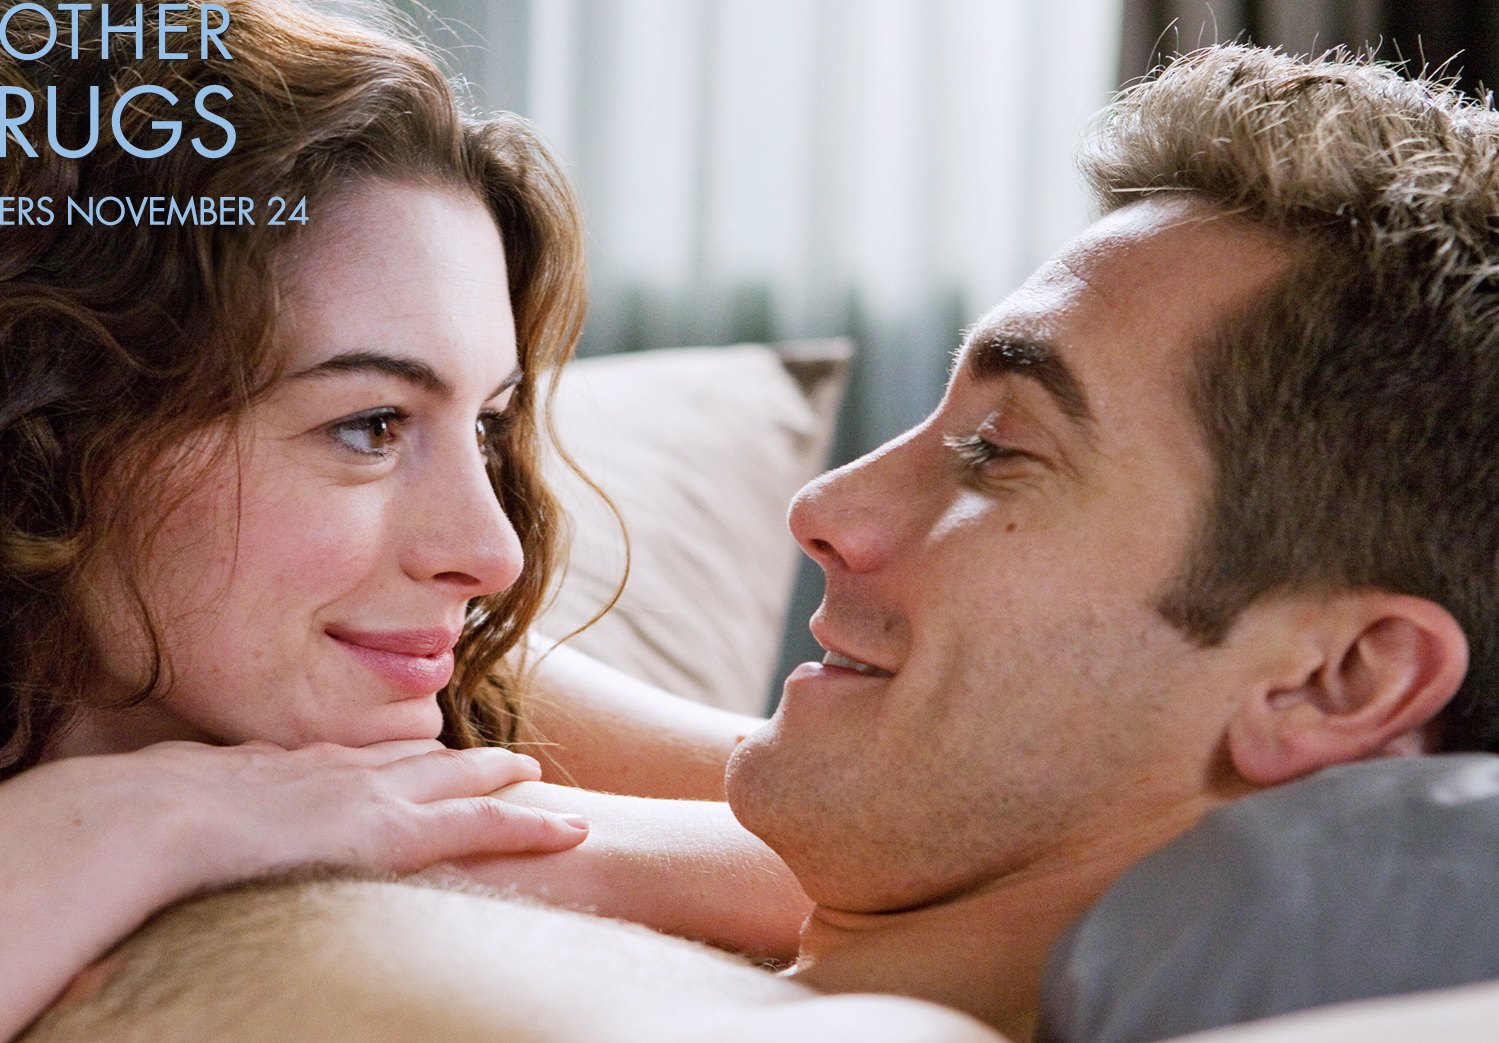 http://1.bp.blogspot.com/_D0vZXGEY9Co/TSH1py7nT4I/AAAAAAAABgQ/LTTqngETBJY/s1600/Anne_Hathaway_in_Love_and_Other_Drugs_Wallpaper_2_1280.jpg